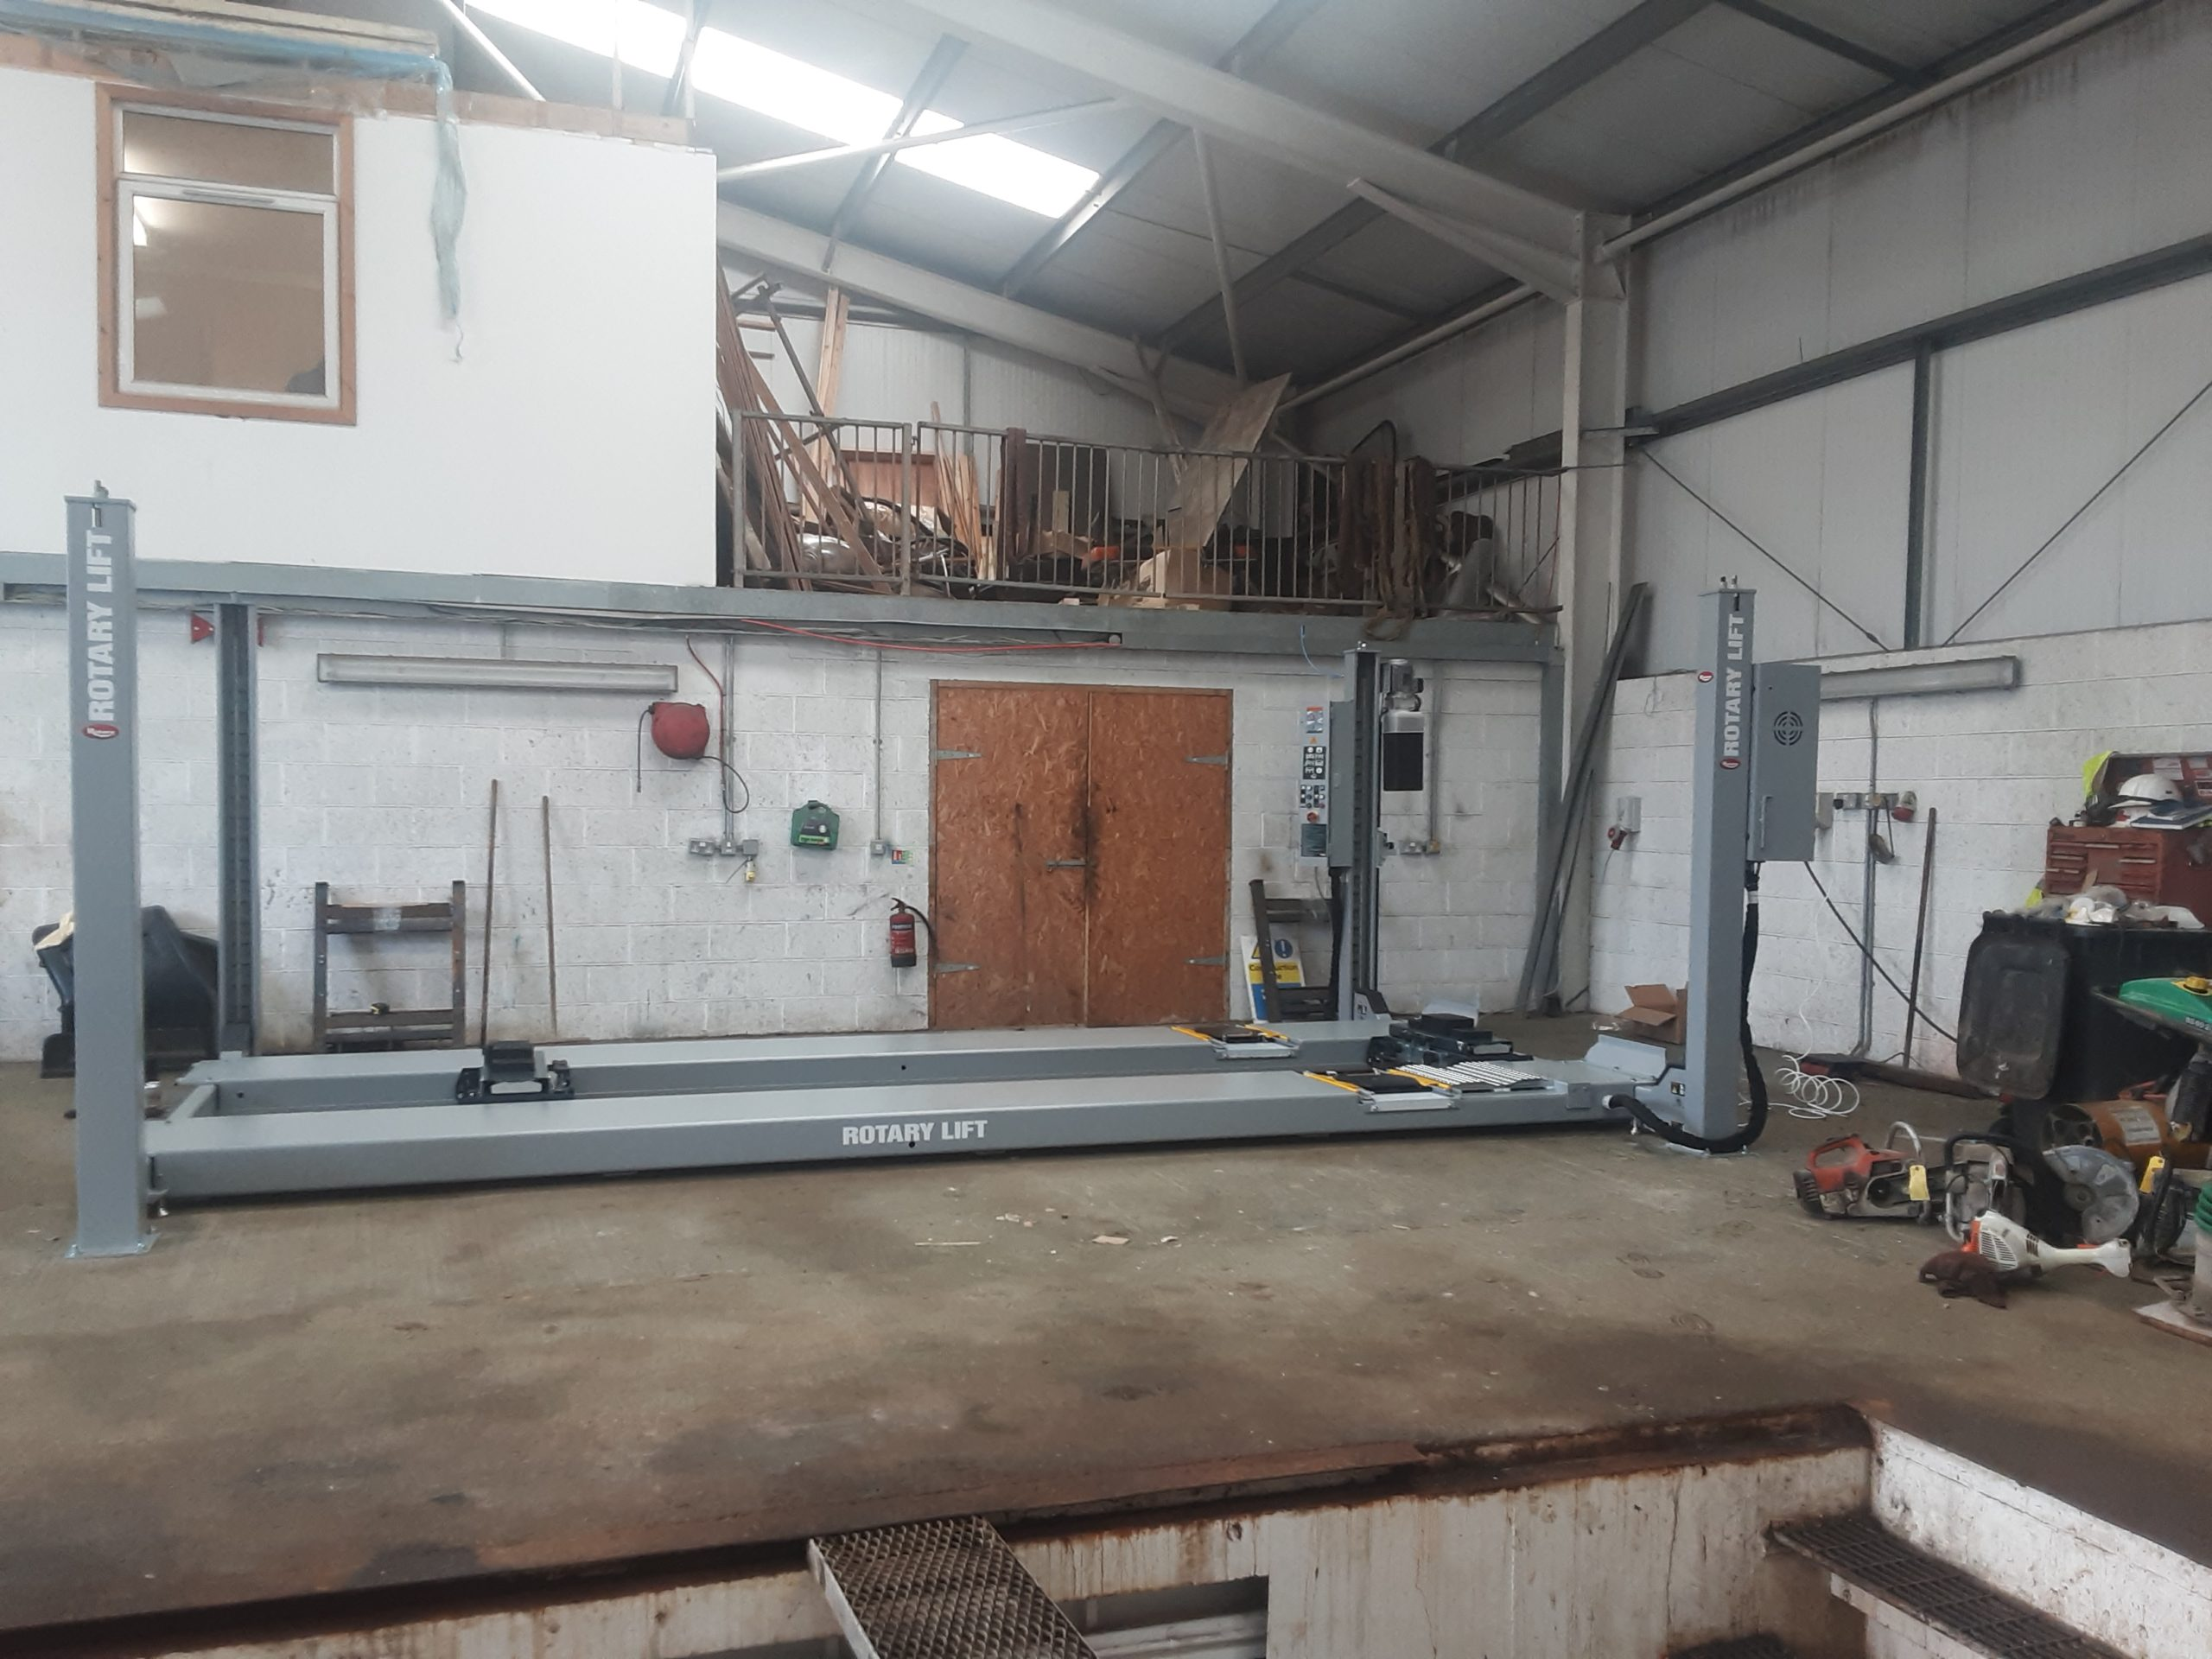 Rotary 4 Post Lift installation from the ISN Garage Assist team on the Isle of Lewis.